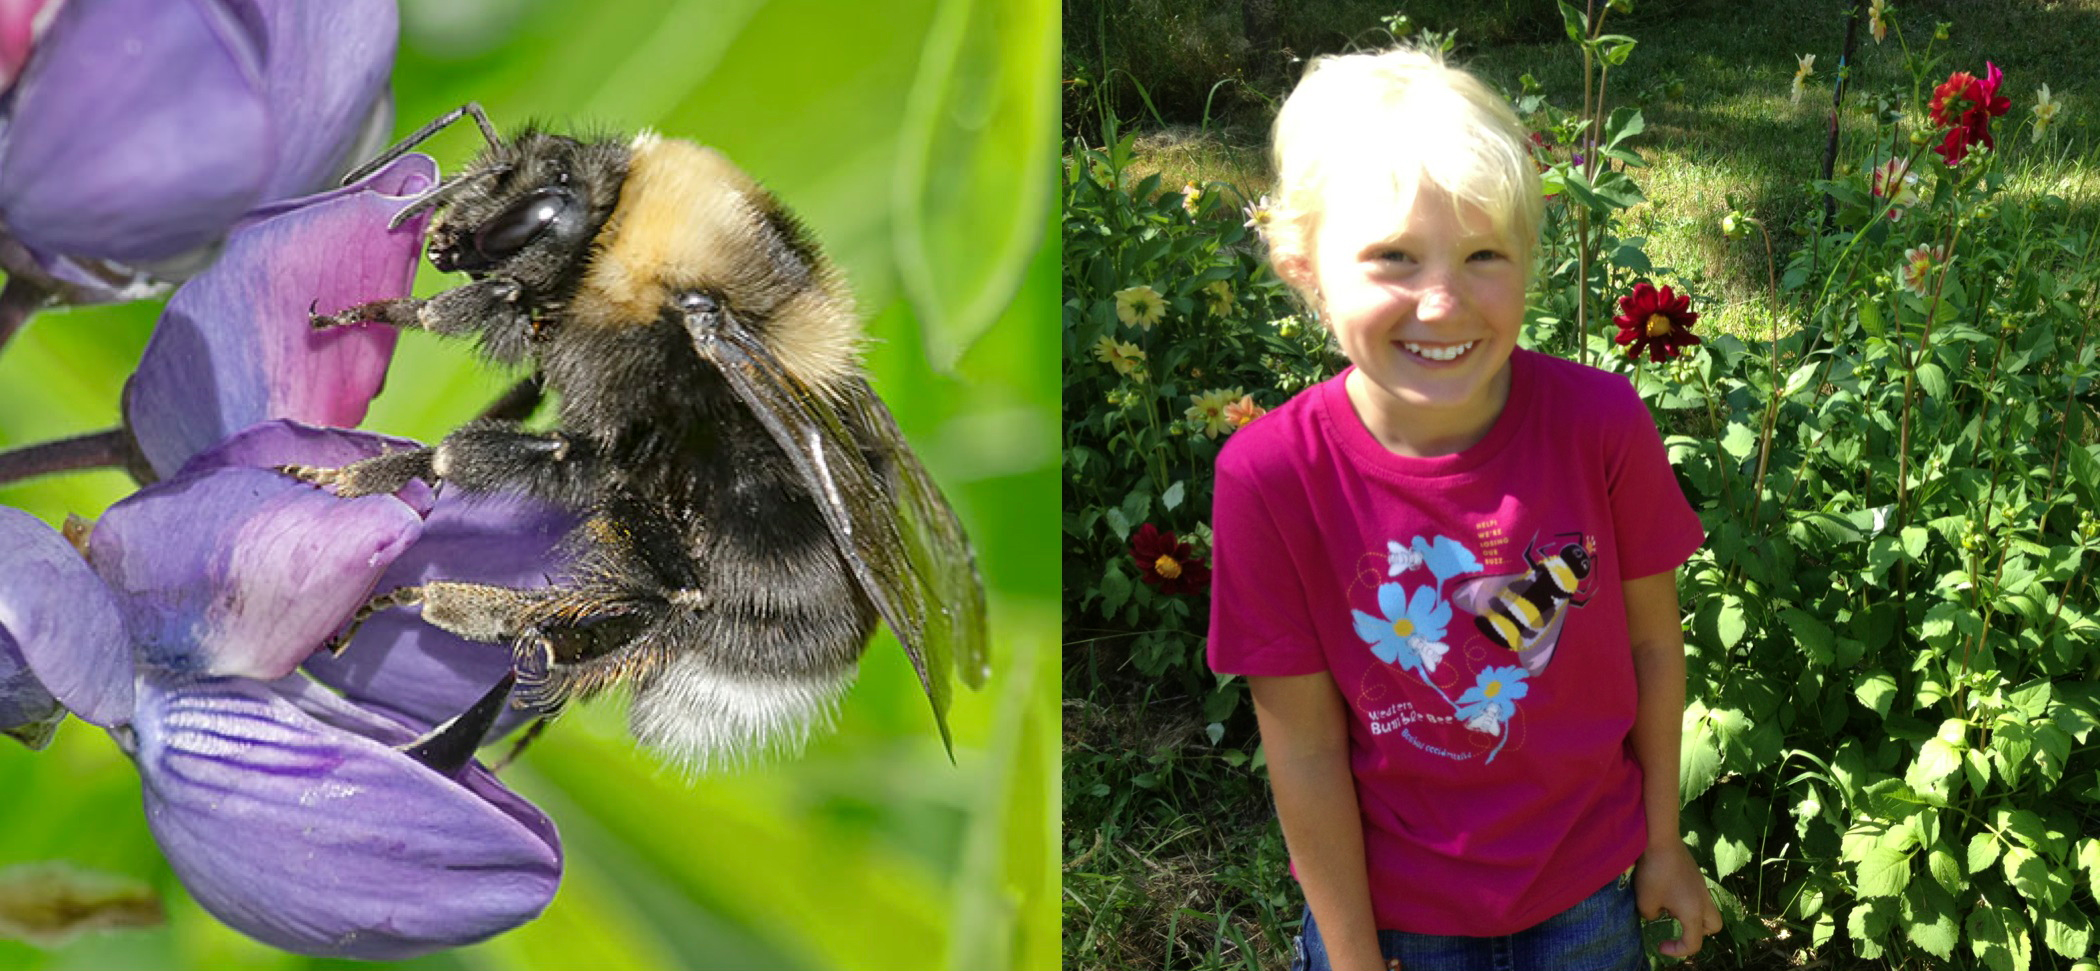 $1 for One.   Support the extraordinary work of the  Xerces Society  by purchasing a  SpeeZees Western Bumble Bee t-shirt in Raspberry or Forest .  Made from  100% GOTS certified organic cotton .